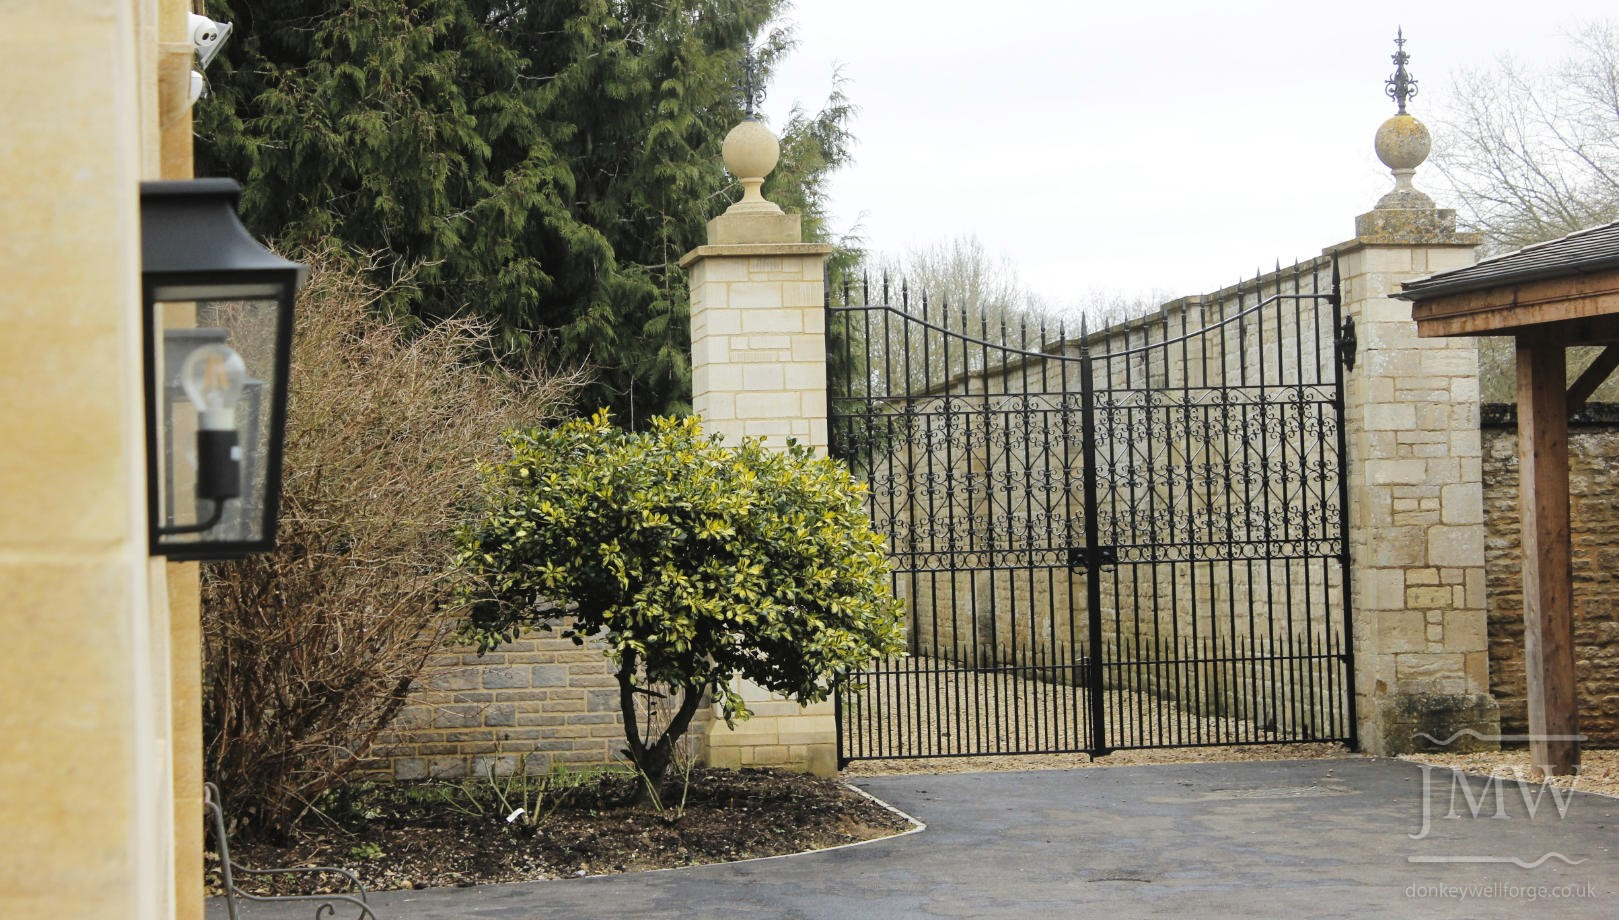 country-estate-garden-gates-handforged-ornate-ironwork-donkeywell-forge